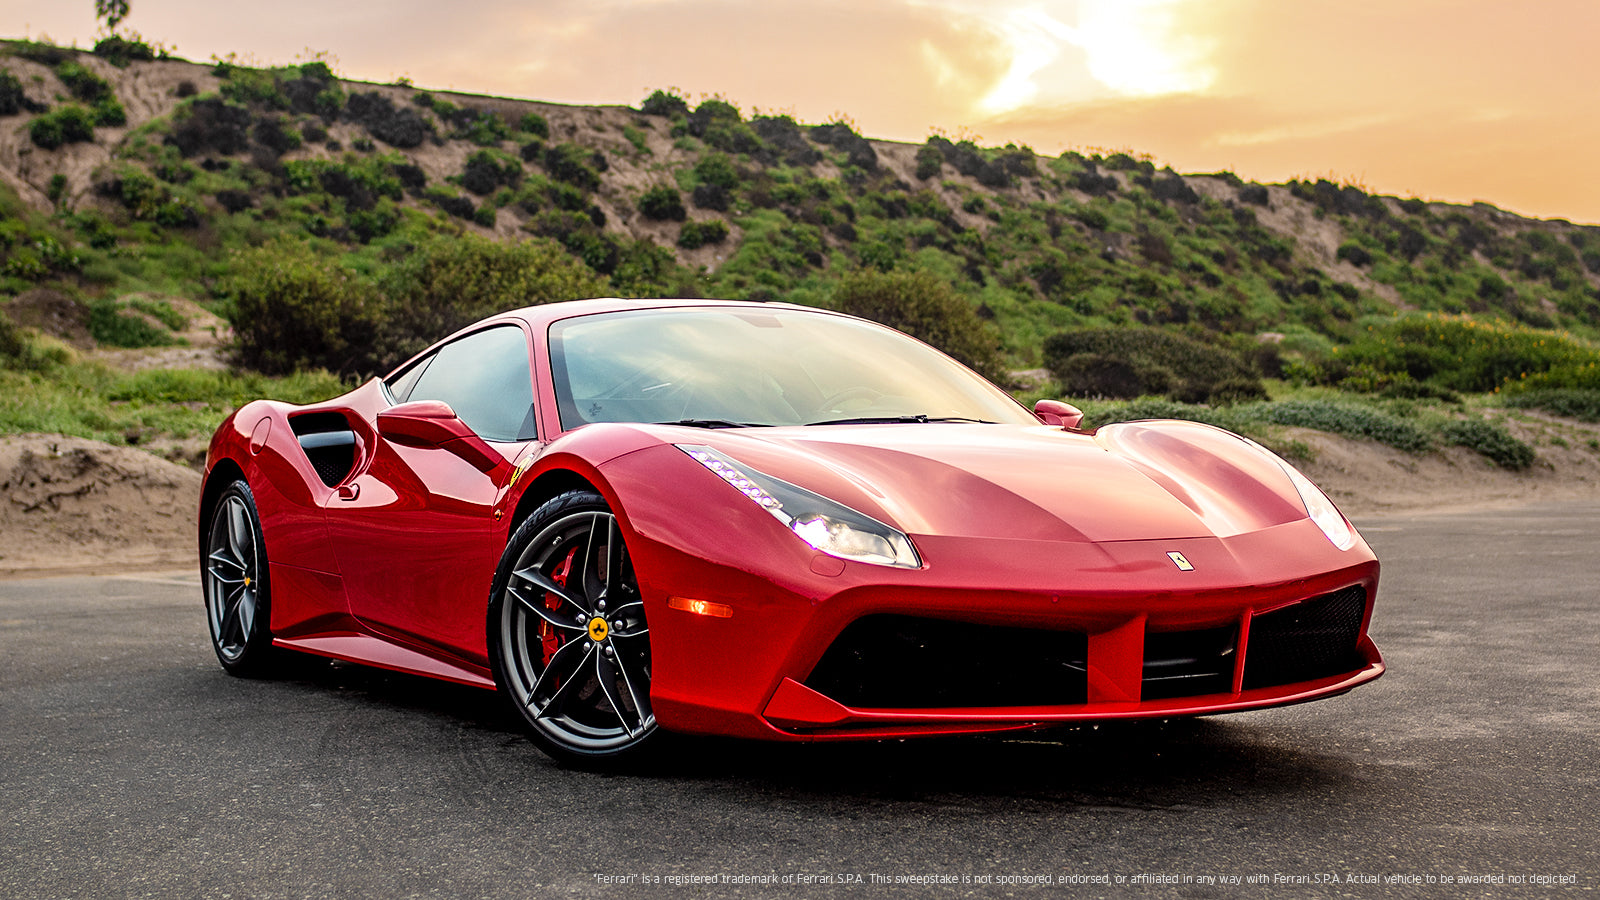 Speed Away with Your Very Own Ferrari® 488 GTB